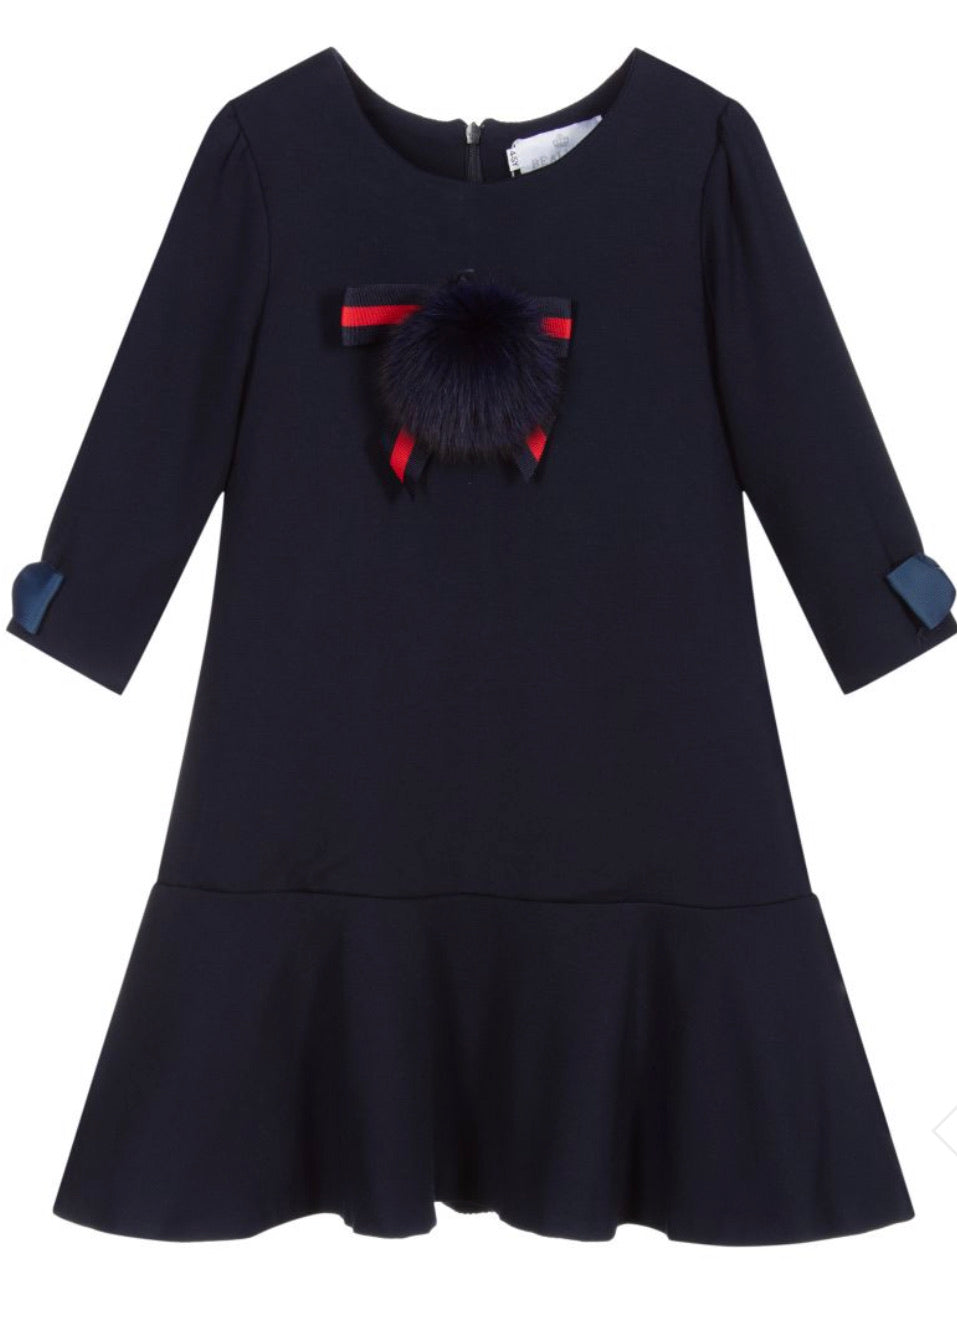 Beau Kid Navy Pom Pom Dress